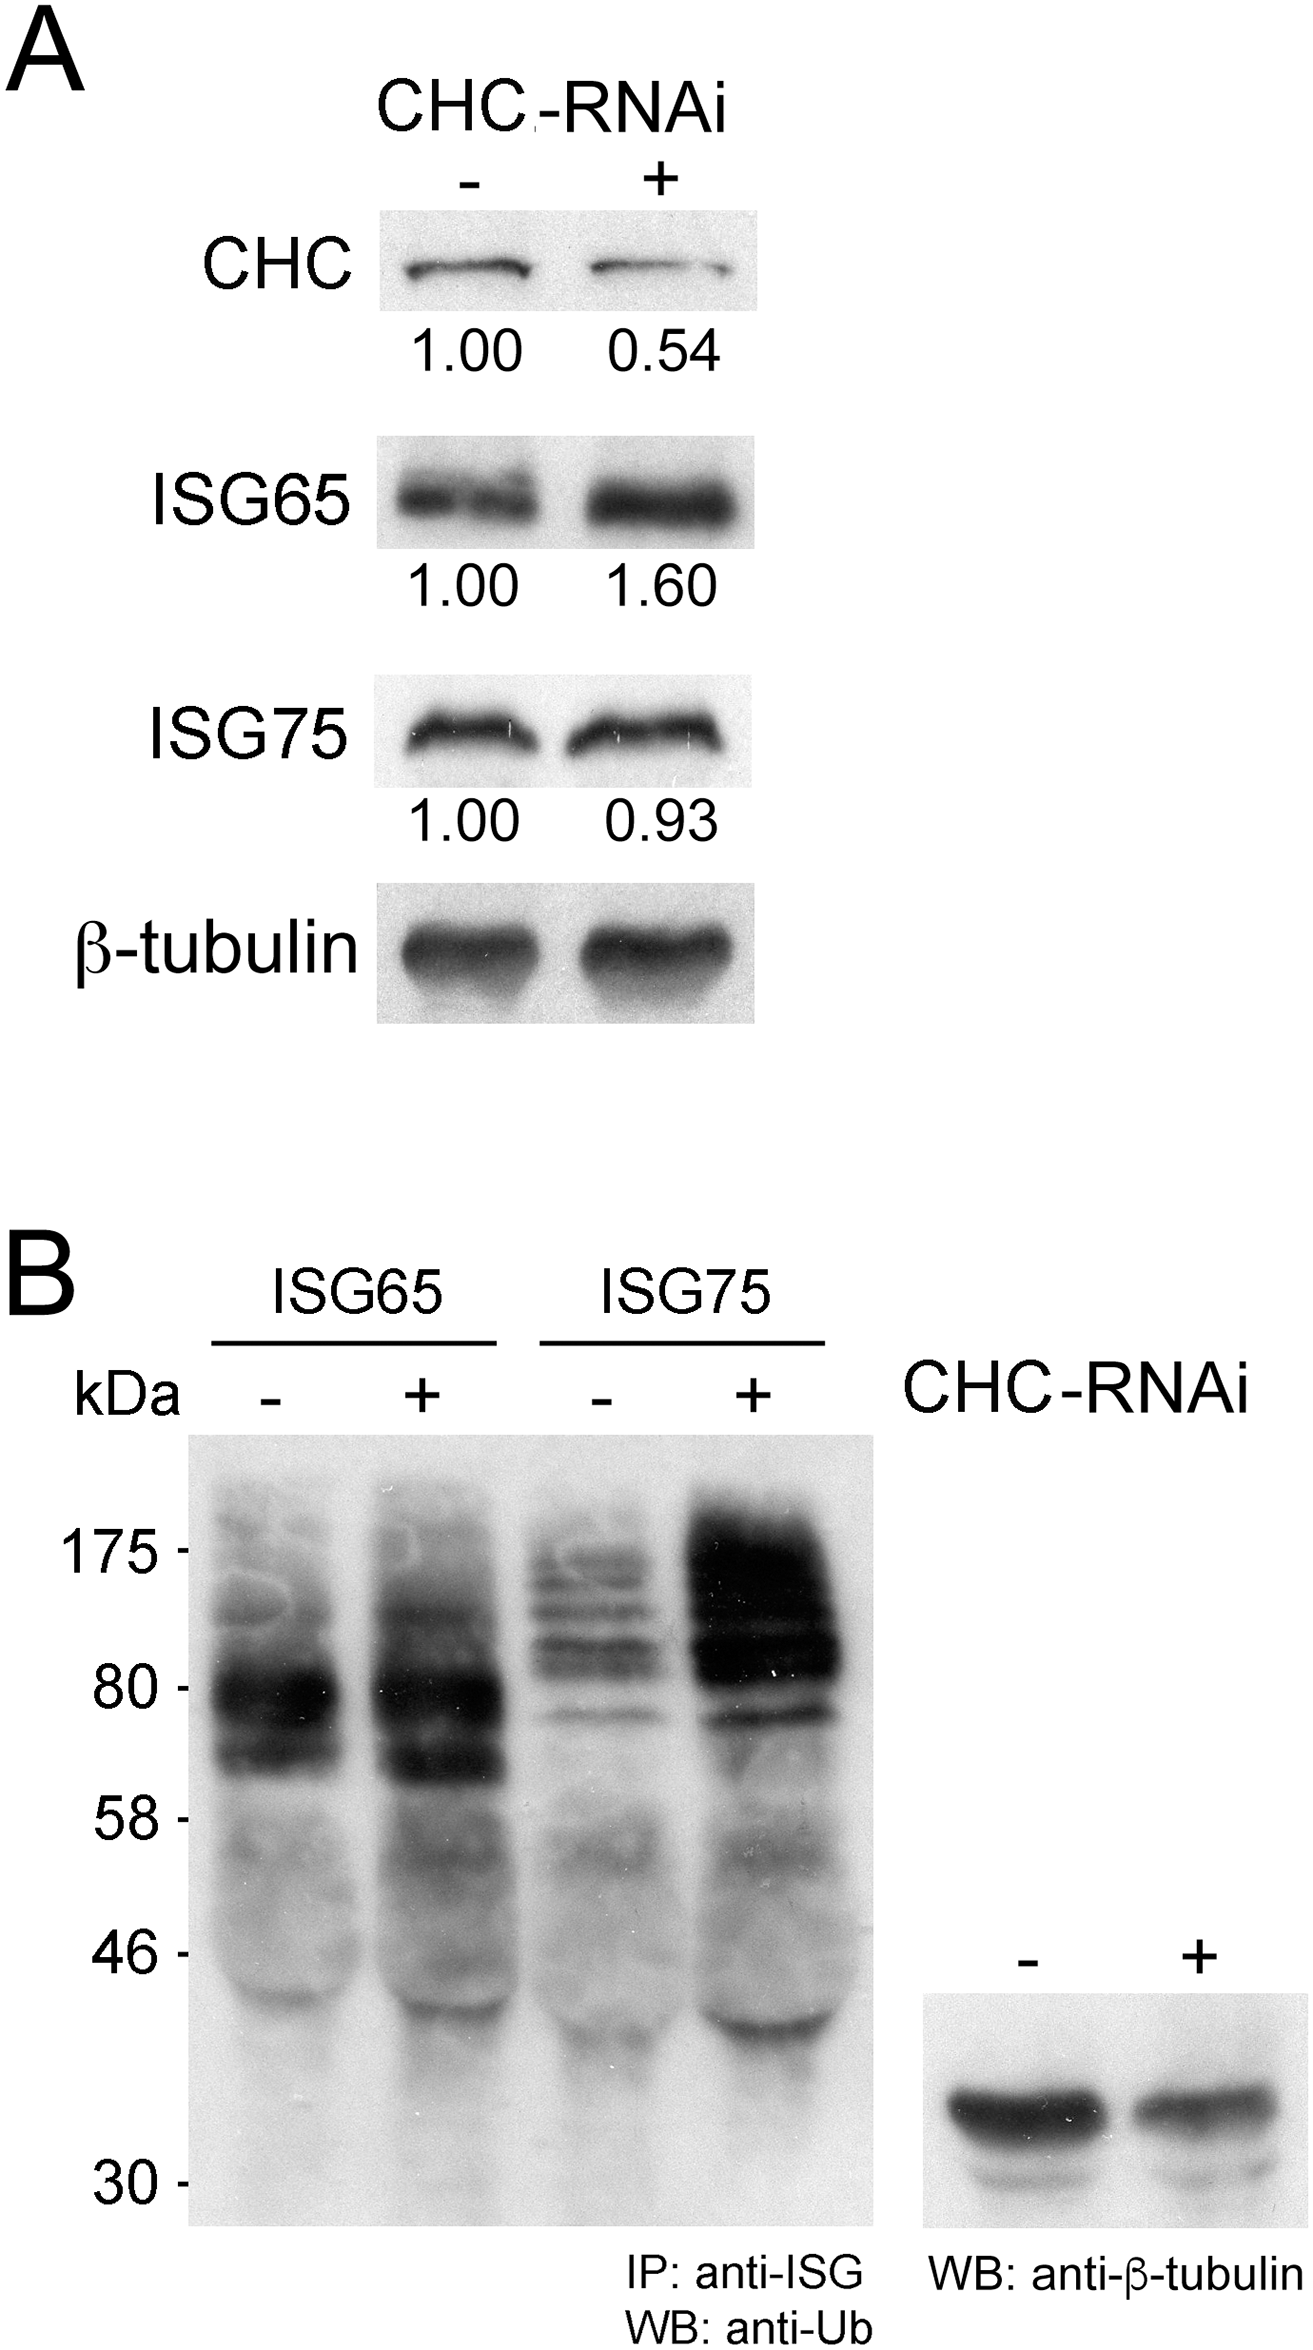 Clathrin knockdown increases ubiquitylation of ISG75.